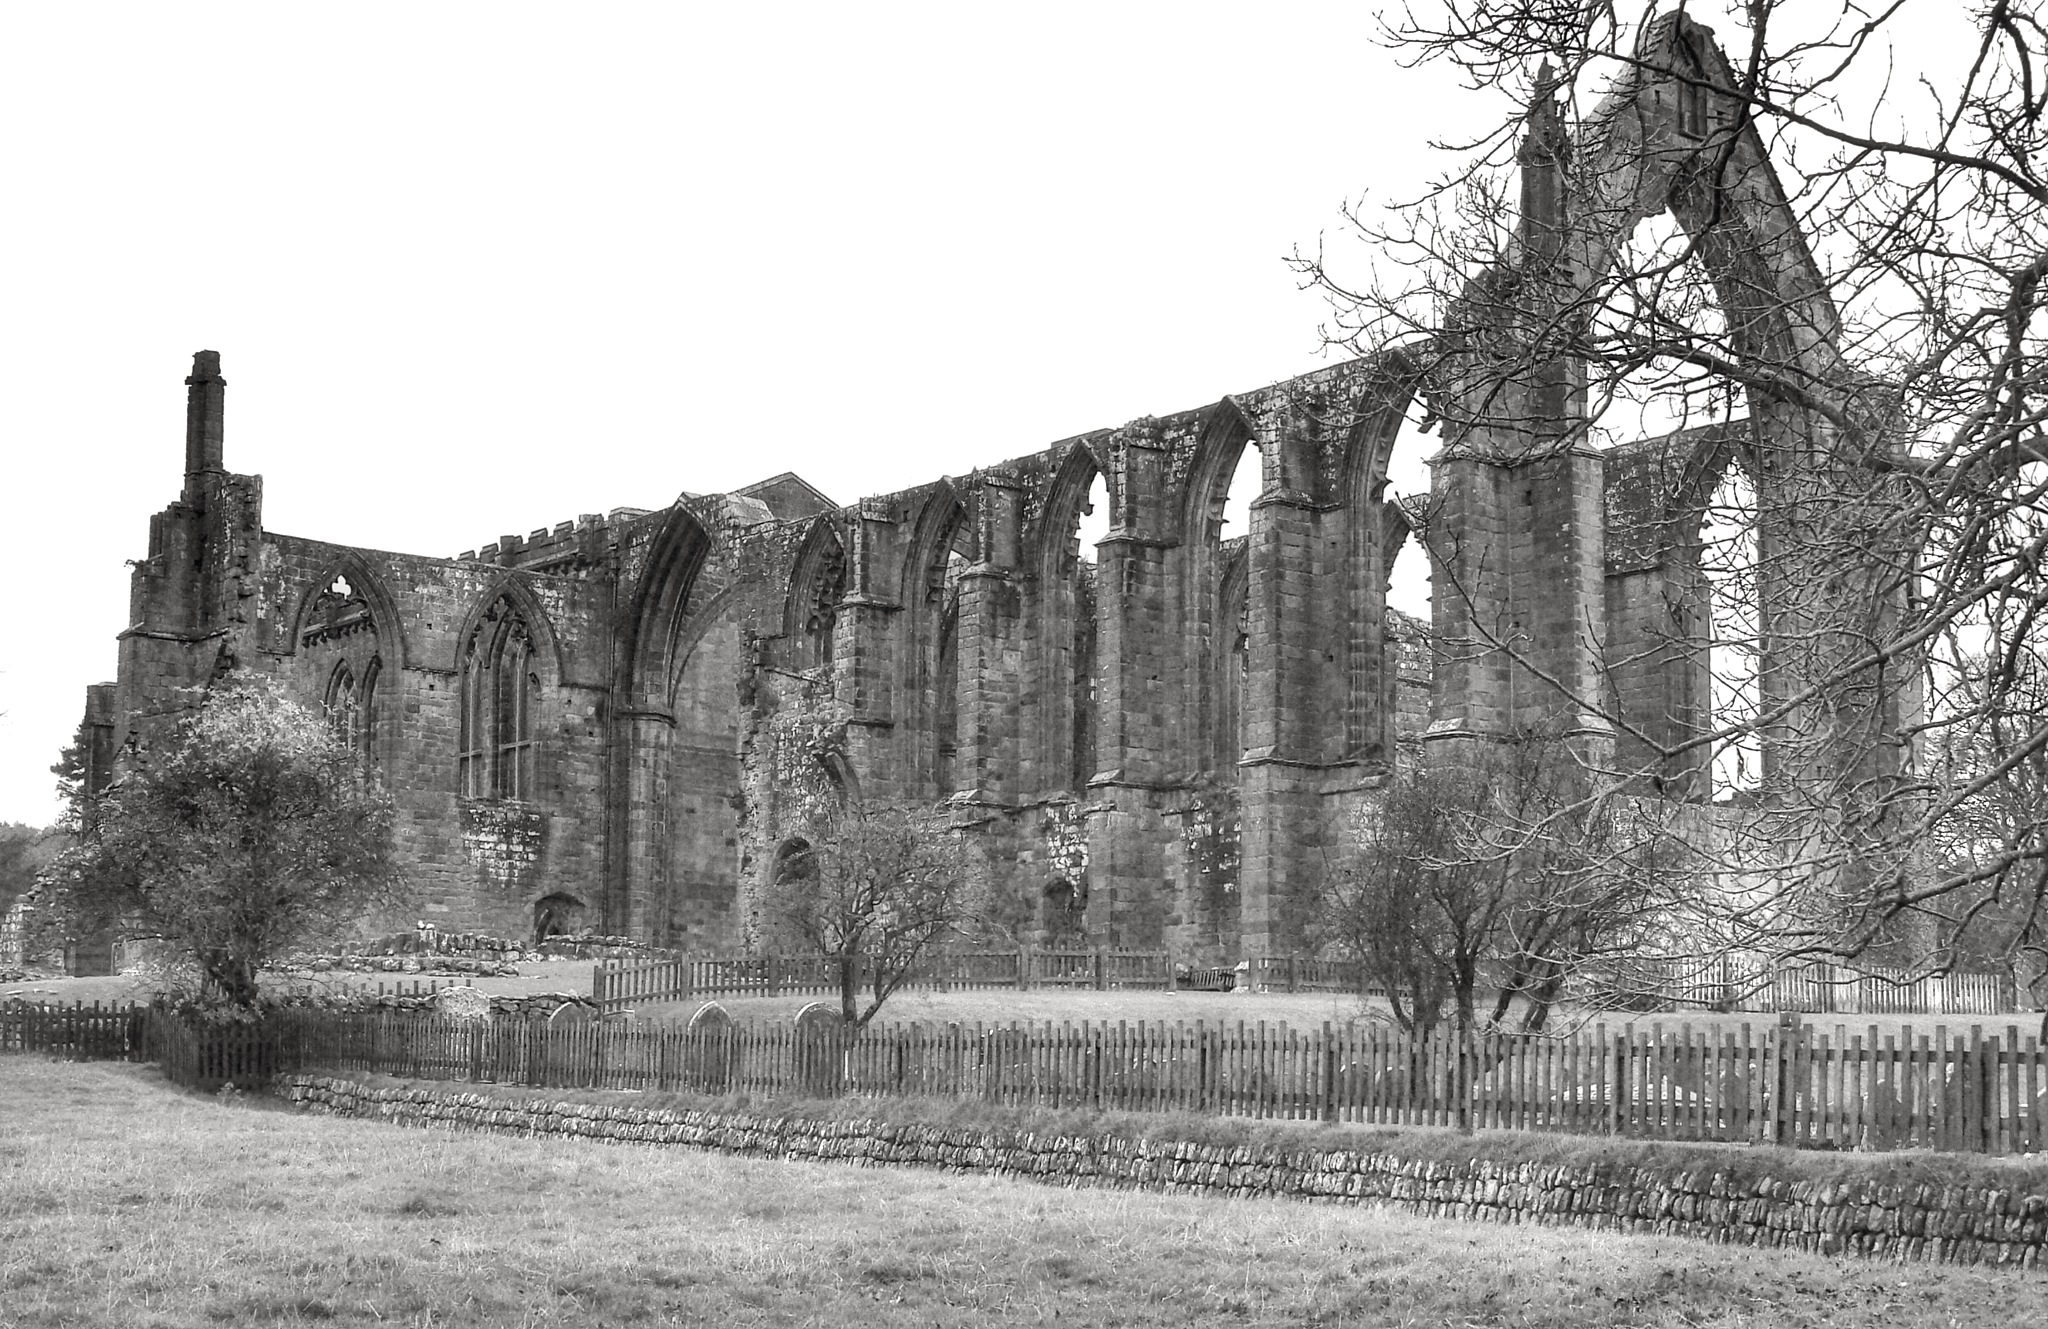 B&W Bolton Abbey 'ruins' North Yorks uk...bw23062043 by Michael jjg